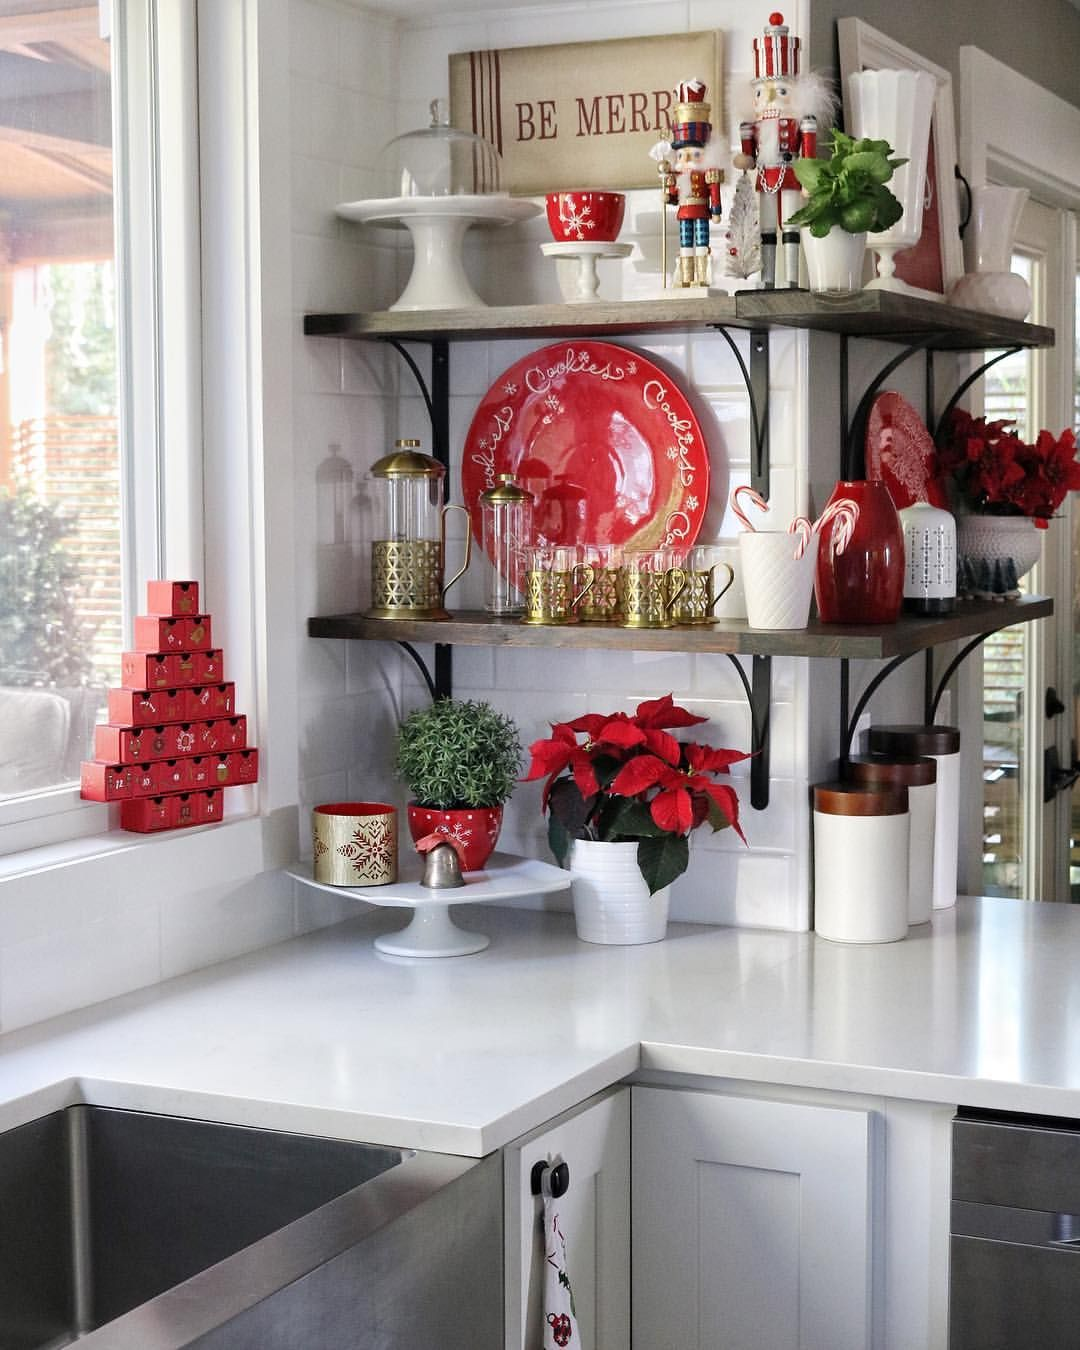 red white christmas kitchen whitekitchen christmaskitchen christmasdecor christmas on kitchen xmas decor id=45077